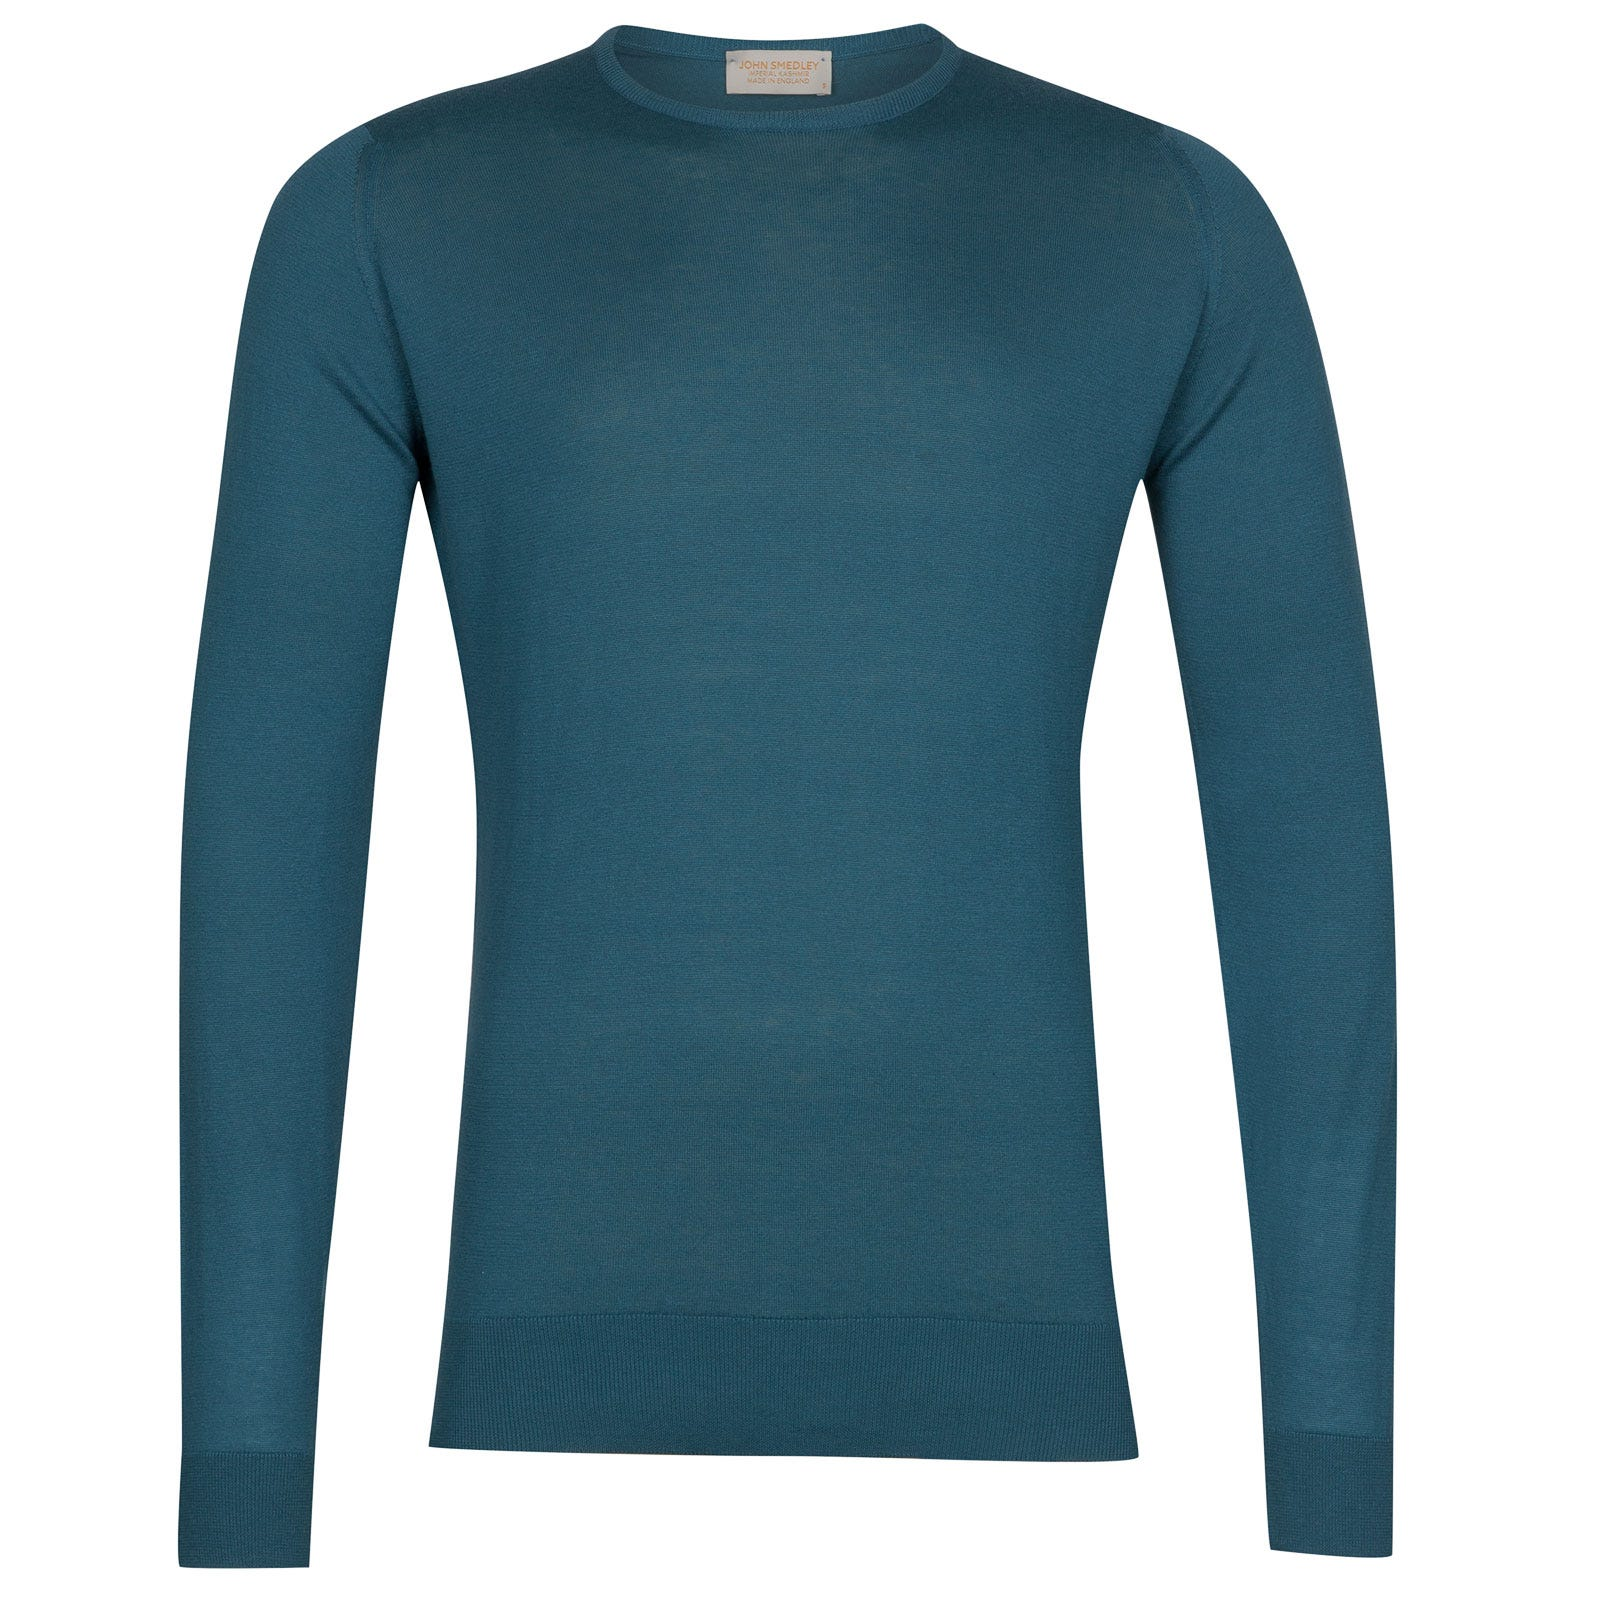 John Smedley theon Sea Island Cotton and Cashmere Pullover in Bias